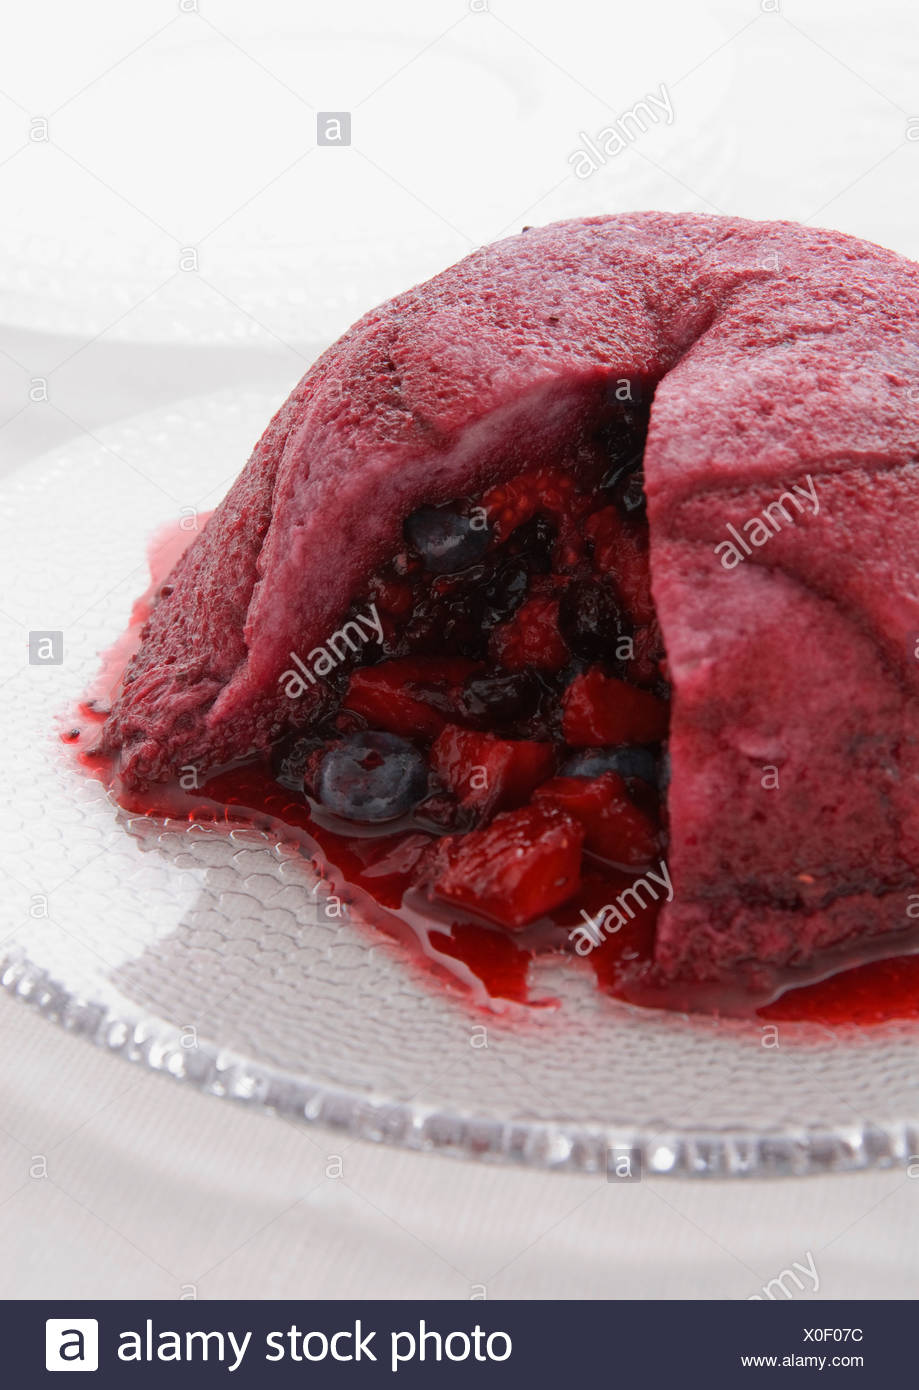 summer pudding - Stock Image